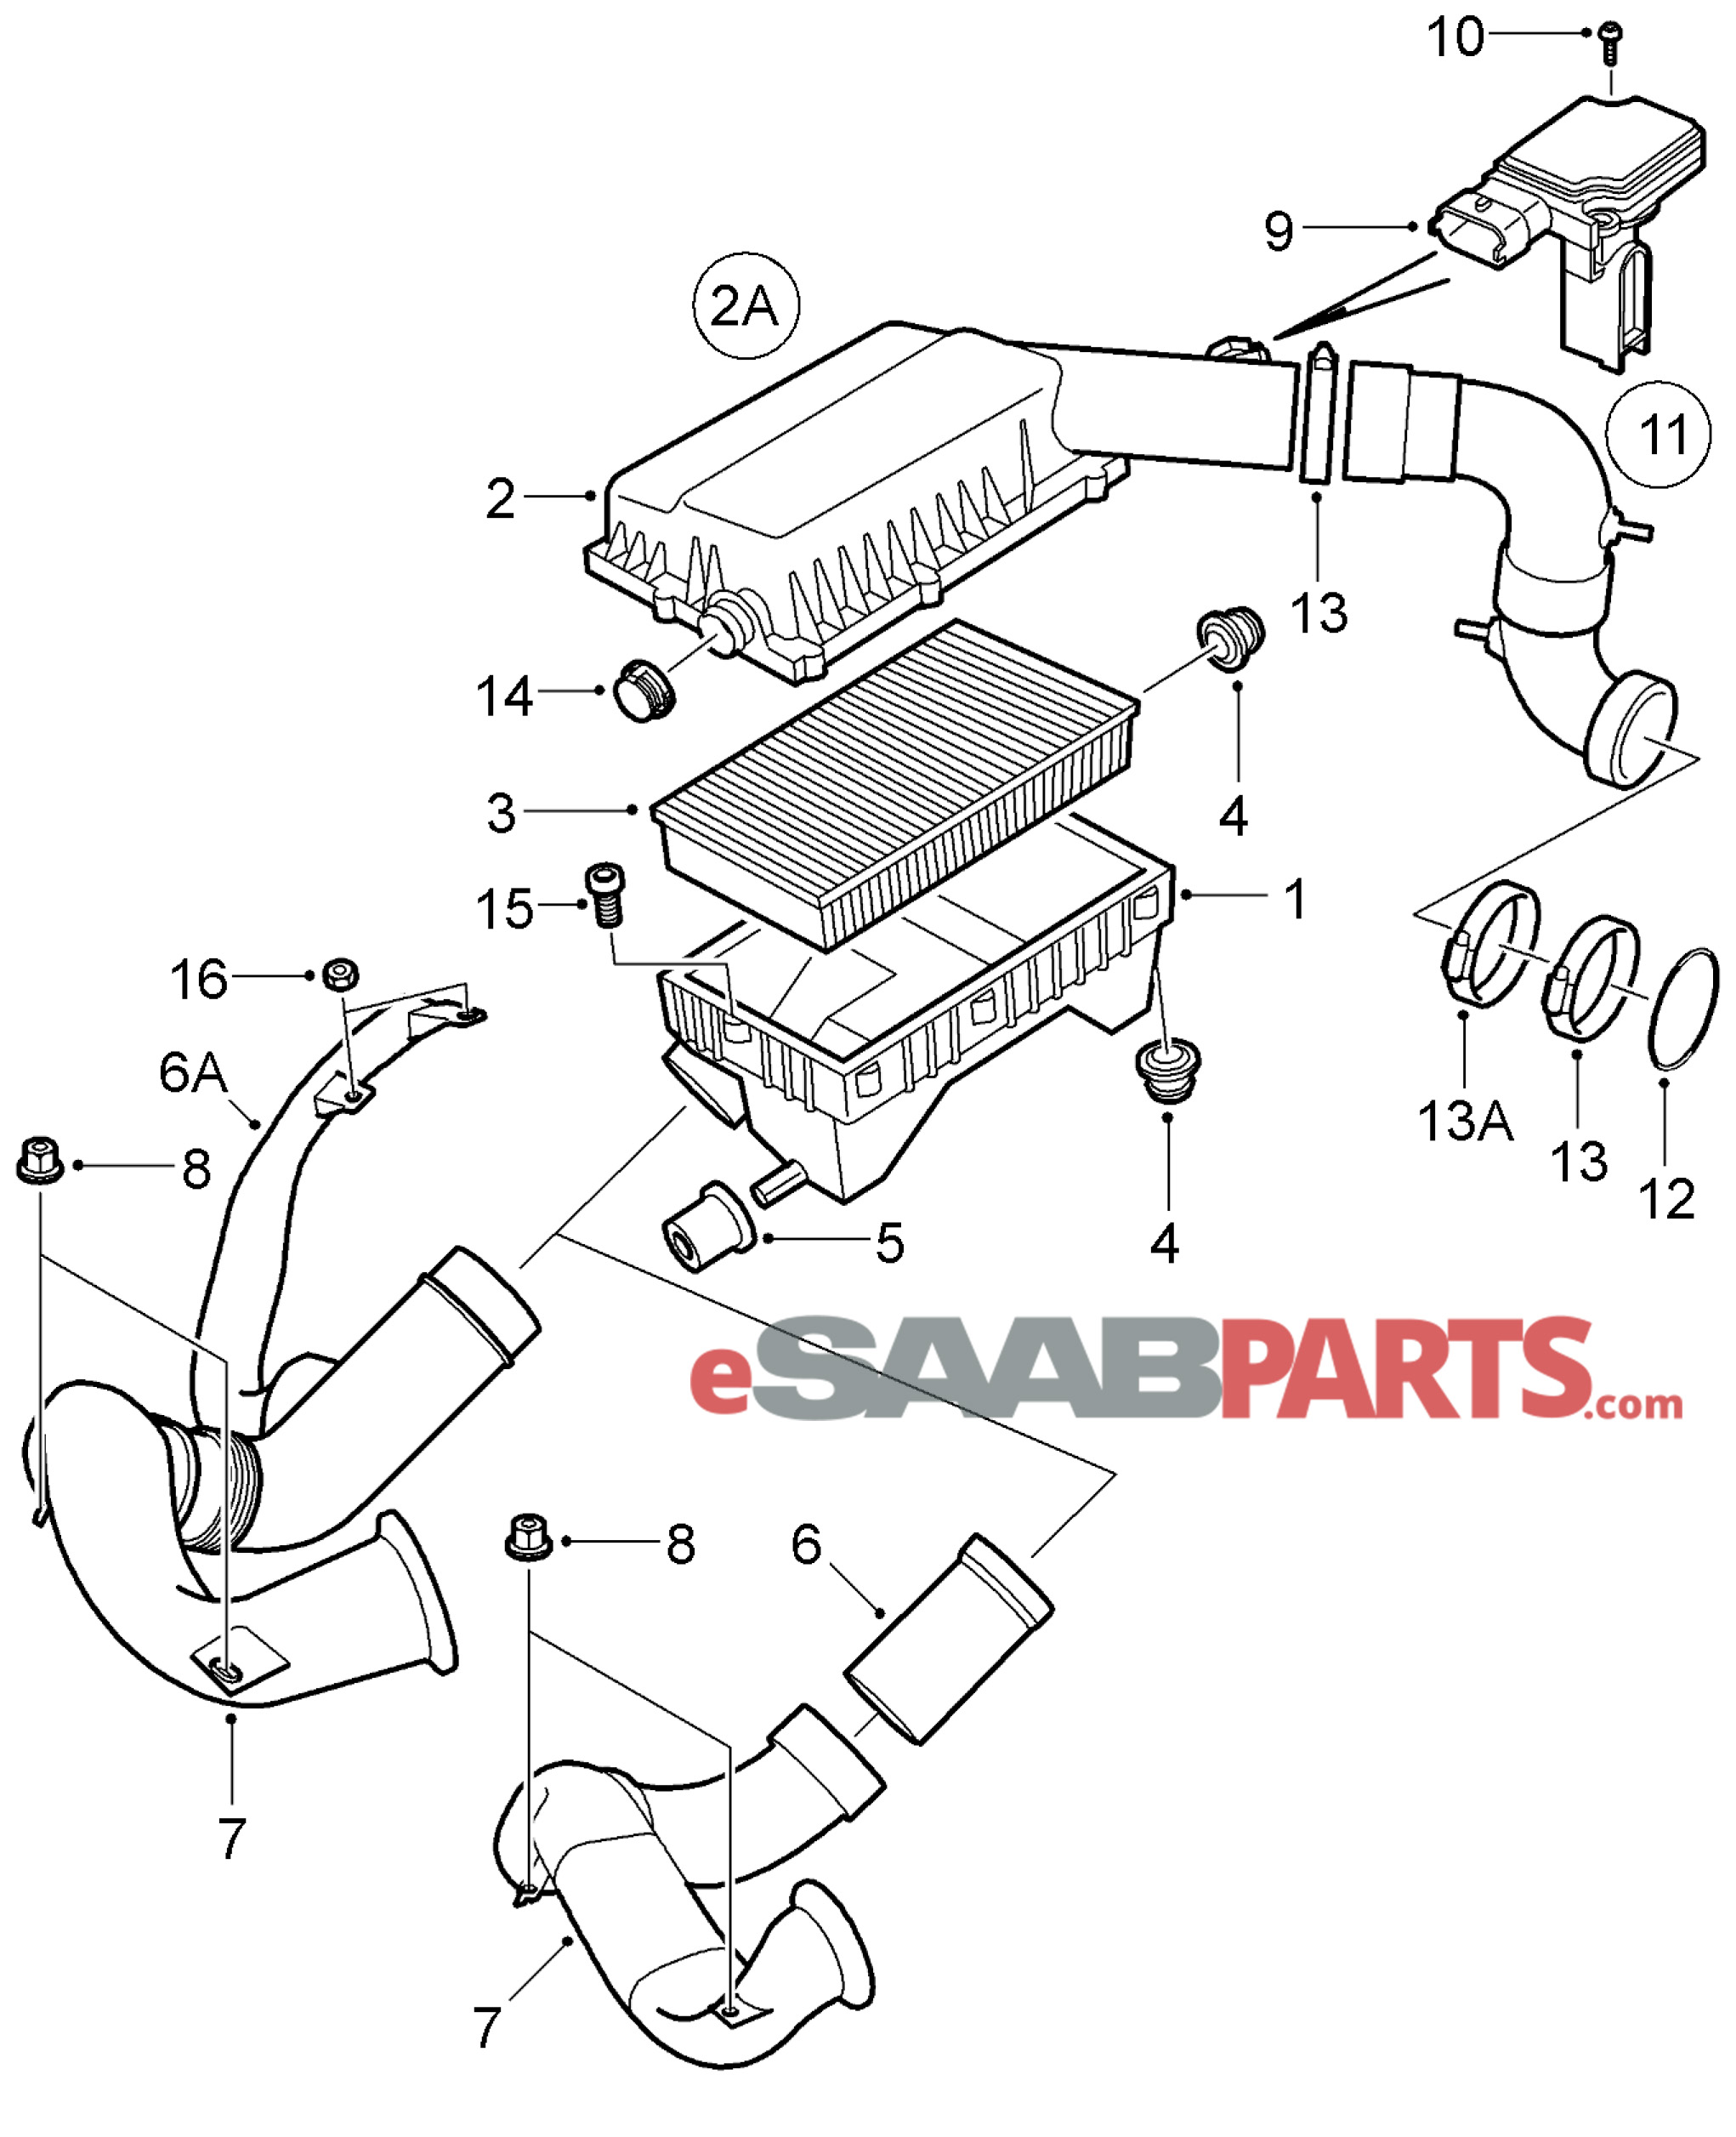 32016011 saab air intake hose 2003 genuine saab parts from rh esaabparts com saab parts diagram 9-5 saab 900 parts diagram